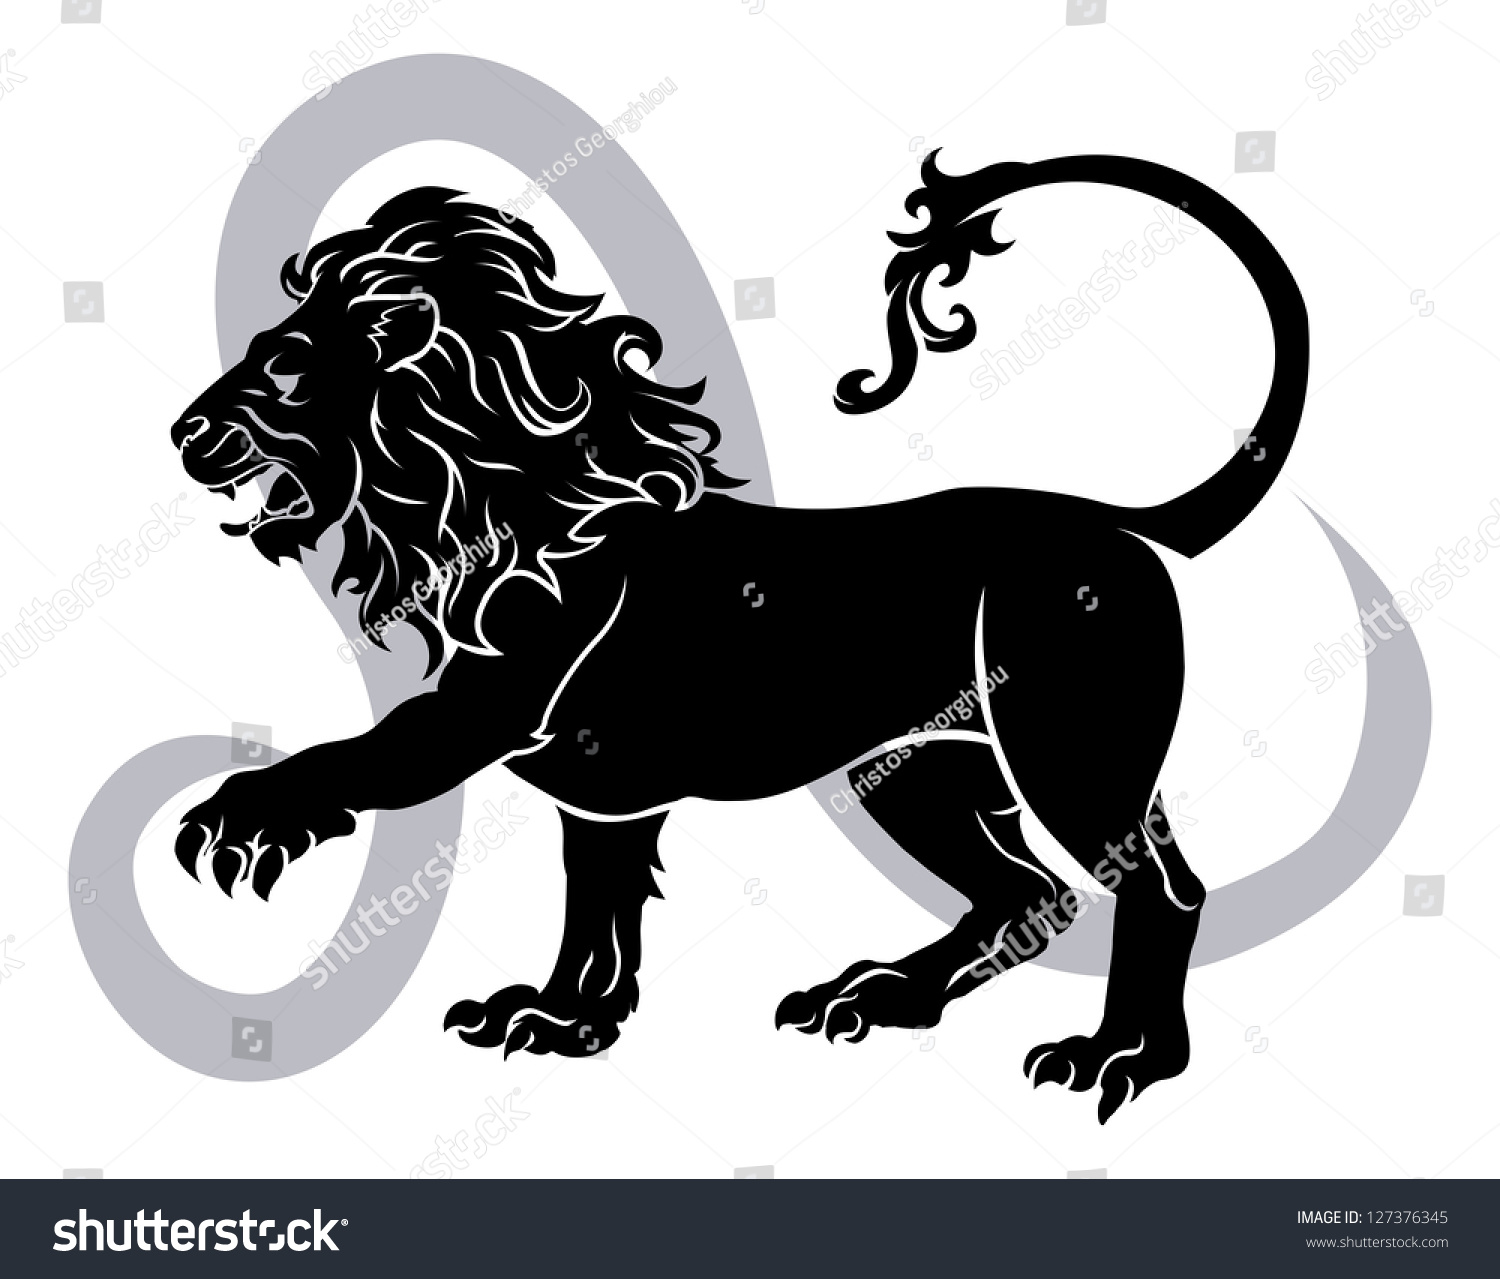 https://image.shutterstock.com/z/stock-vector-illustration-of-leo-the-lion-zodiac-horoscope-astrology-sign-127376345.jpg Leo Animal Sign